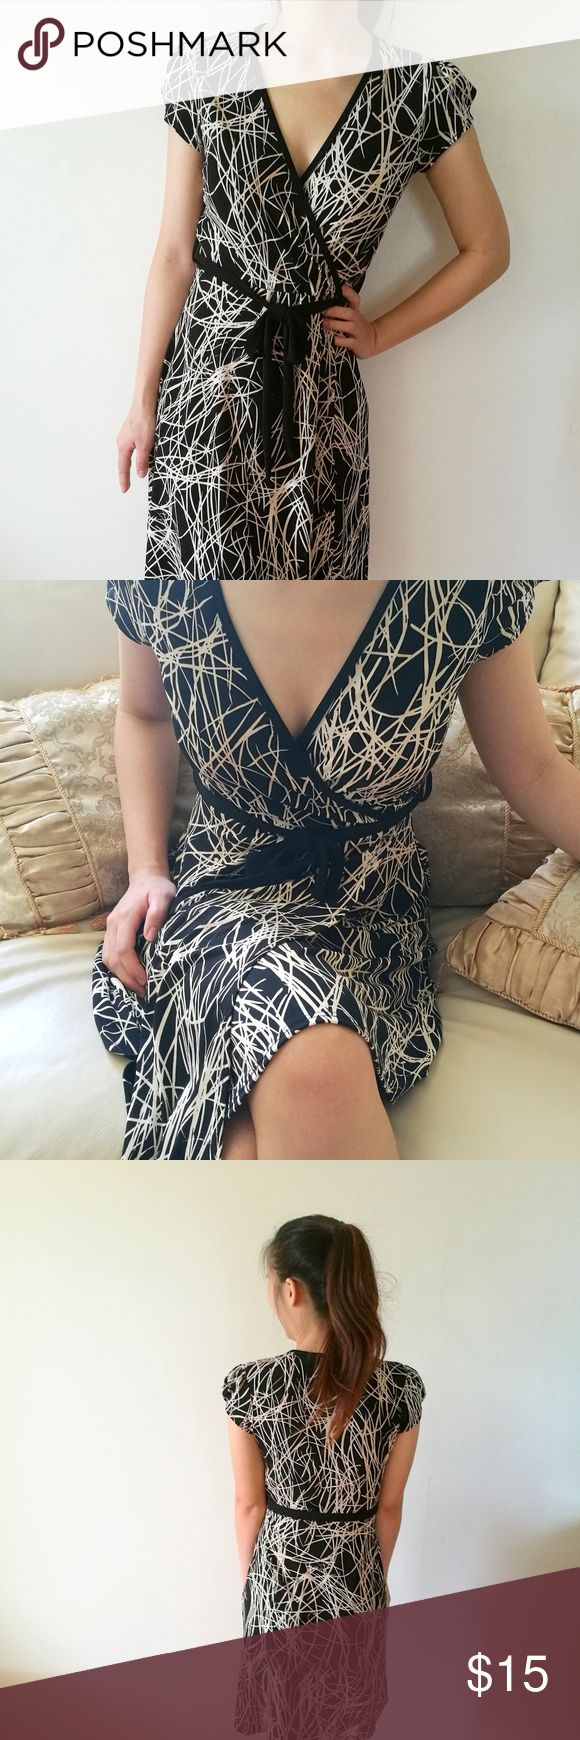 [ Donutz. Inc. ] Black and White Wrap Dress Cute wrap dress great for a day party.   ❤Made in the USA ❤ Model is 5'4 Donutz Inc. Dresses Midi